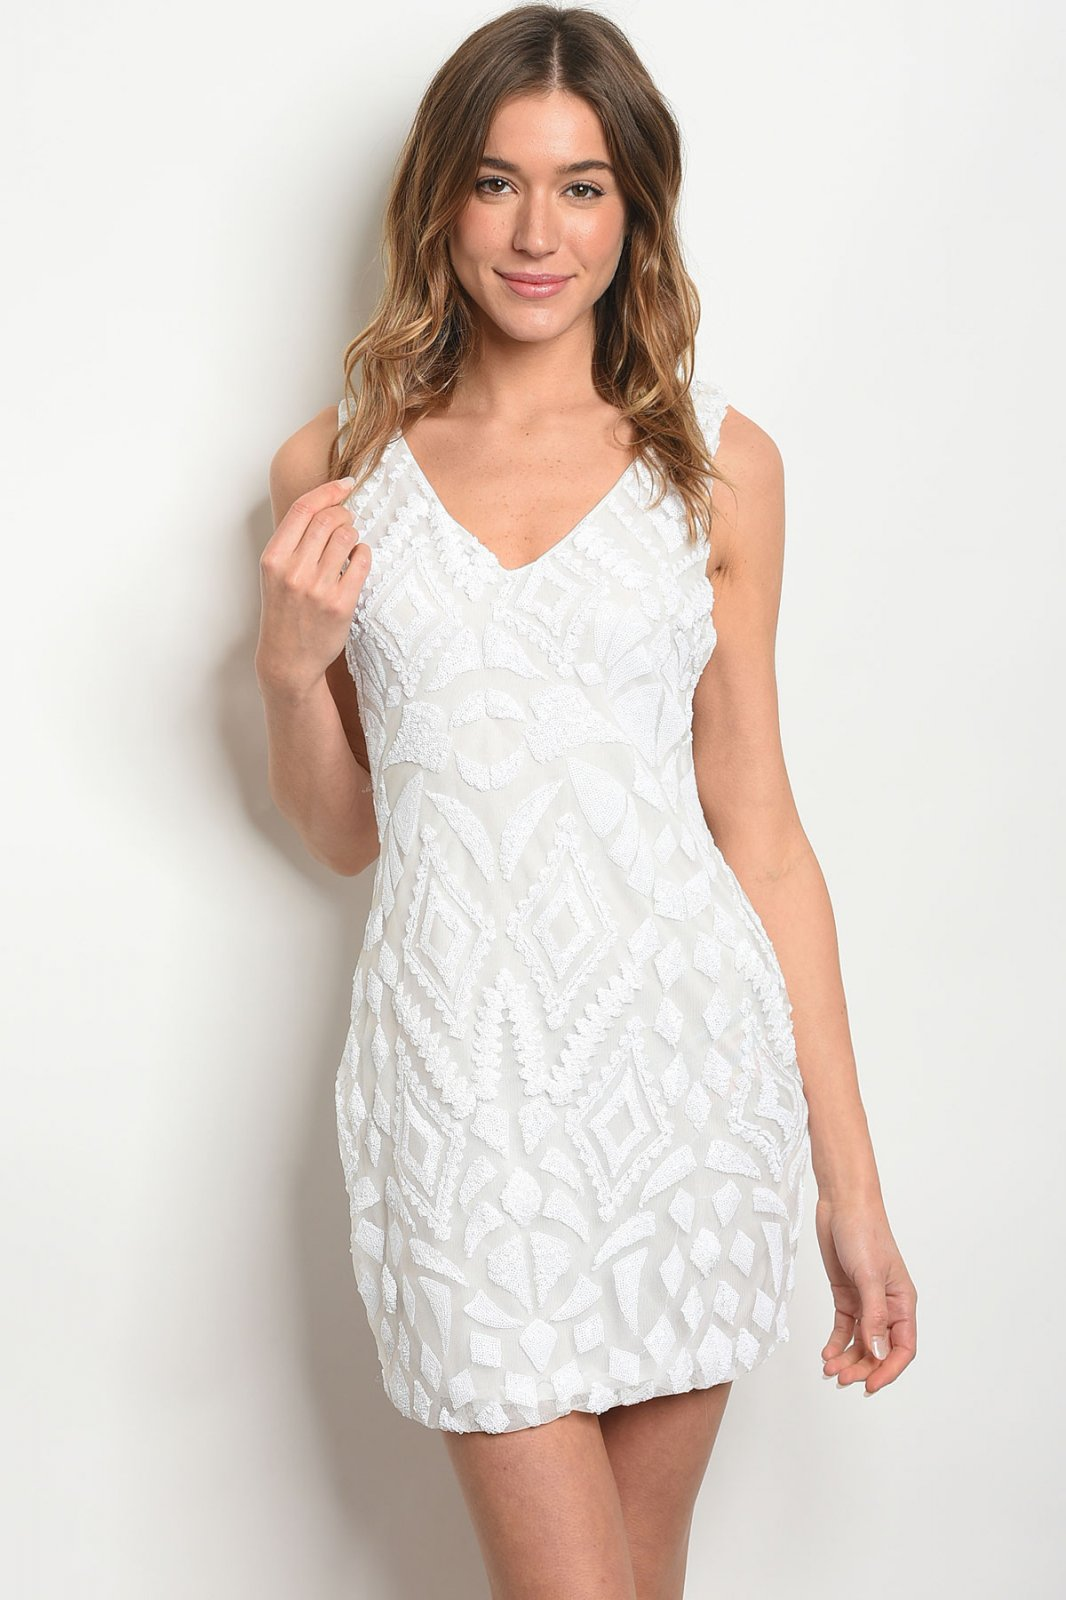 OFF WHITE WITH SEQUINS DRESS